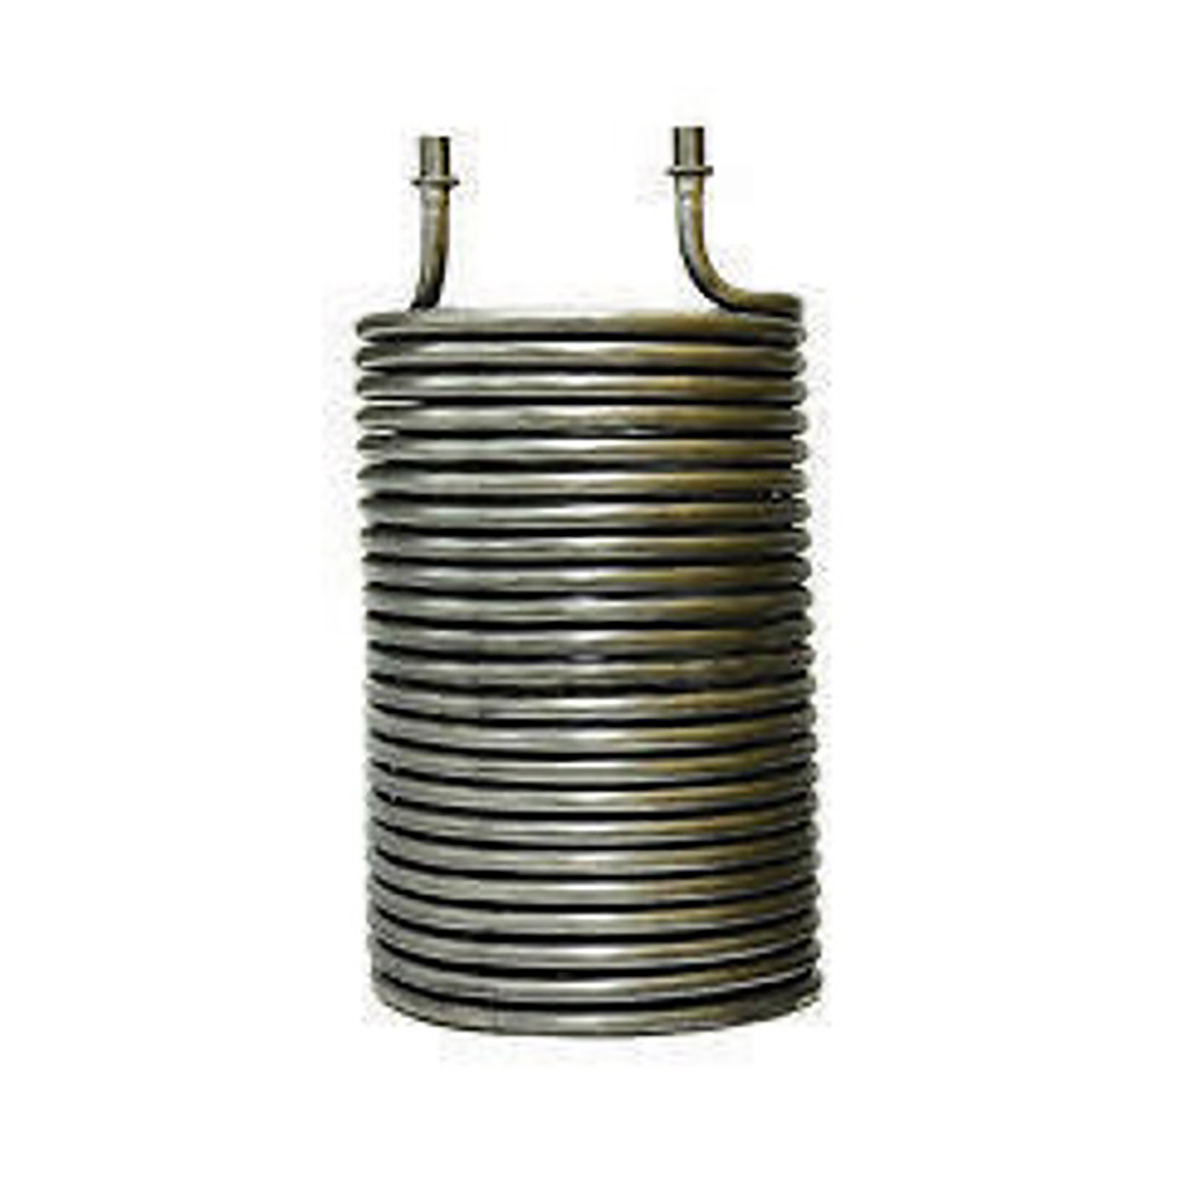 443741  Kranzle Heating Coil Stainless Steel